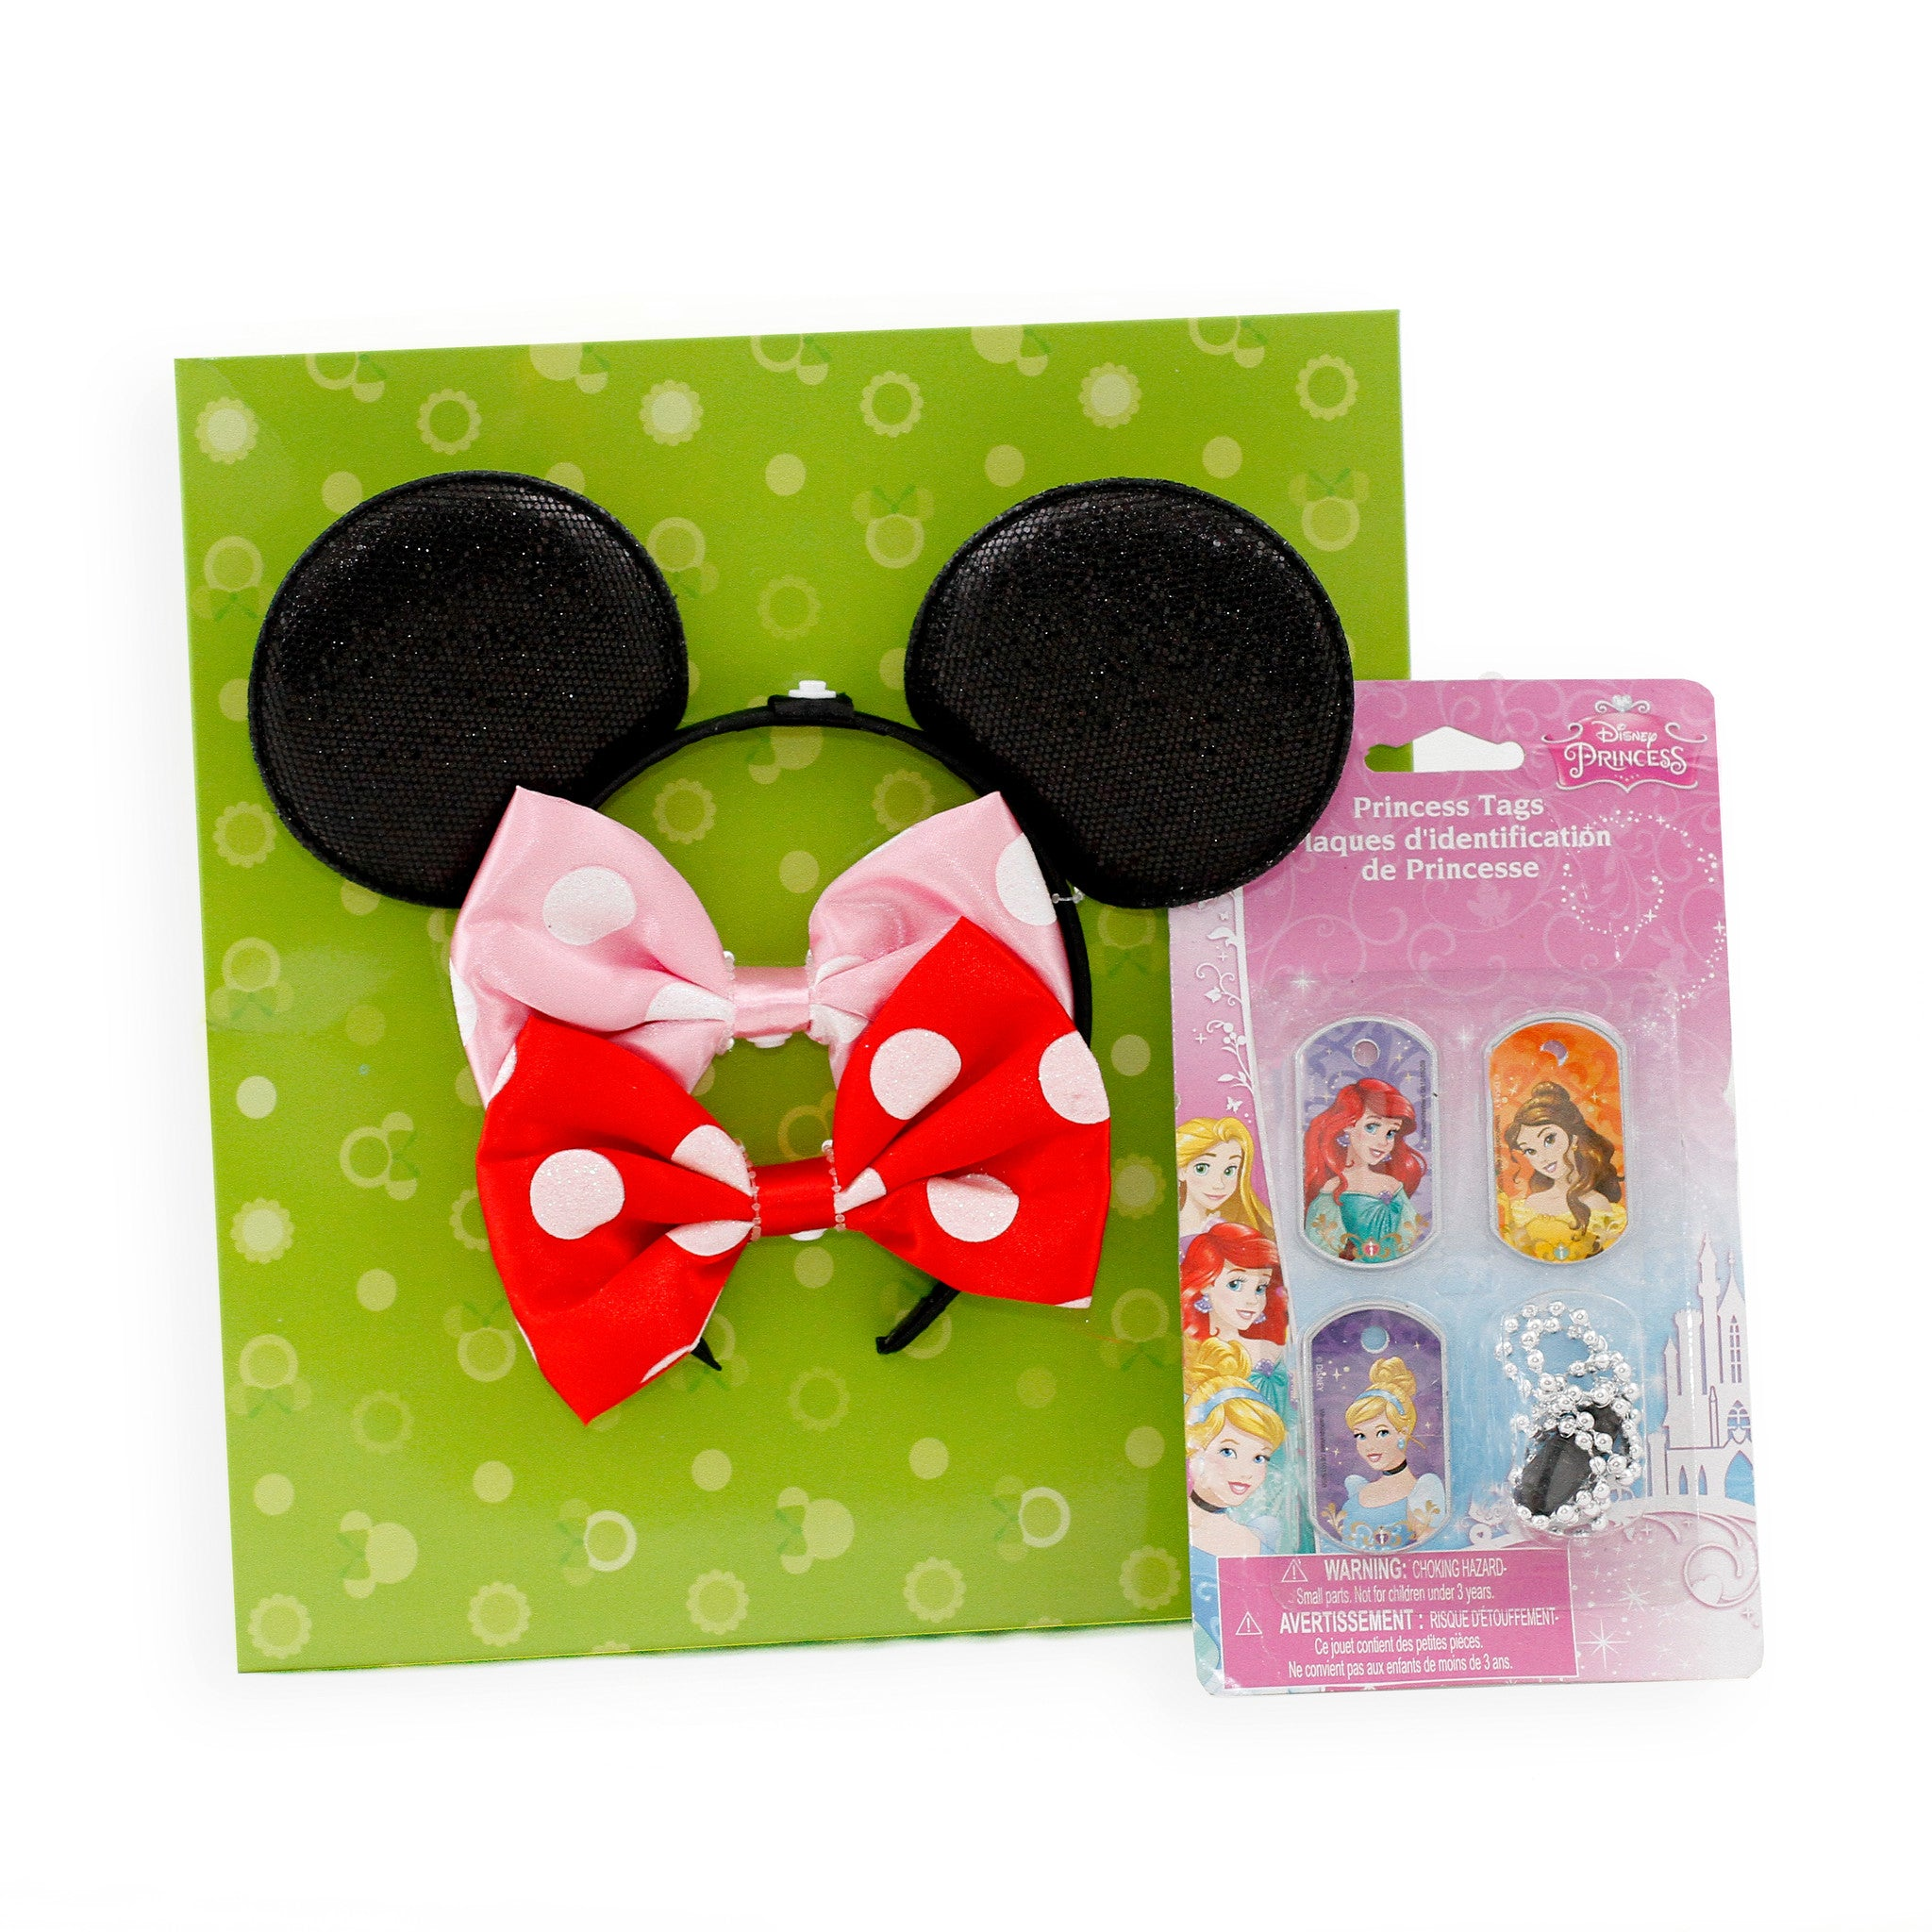 Minnie Mouse 2-Piece Interchangeable Bow Headband - 3-Piece Disney Princess Tags Necklace - Little TroubleMakers | Kids Toys and Fashion